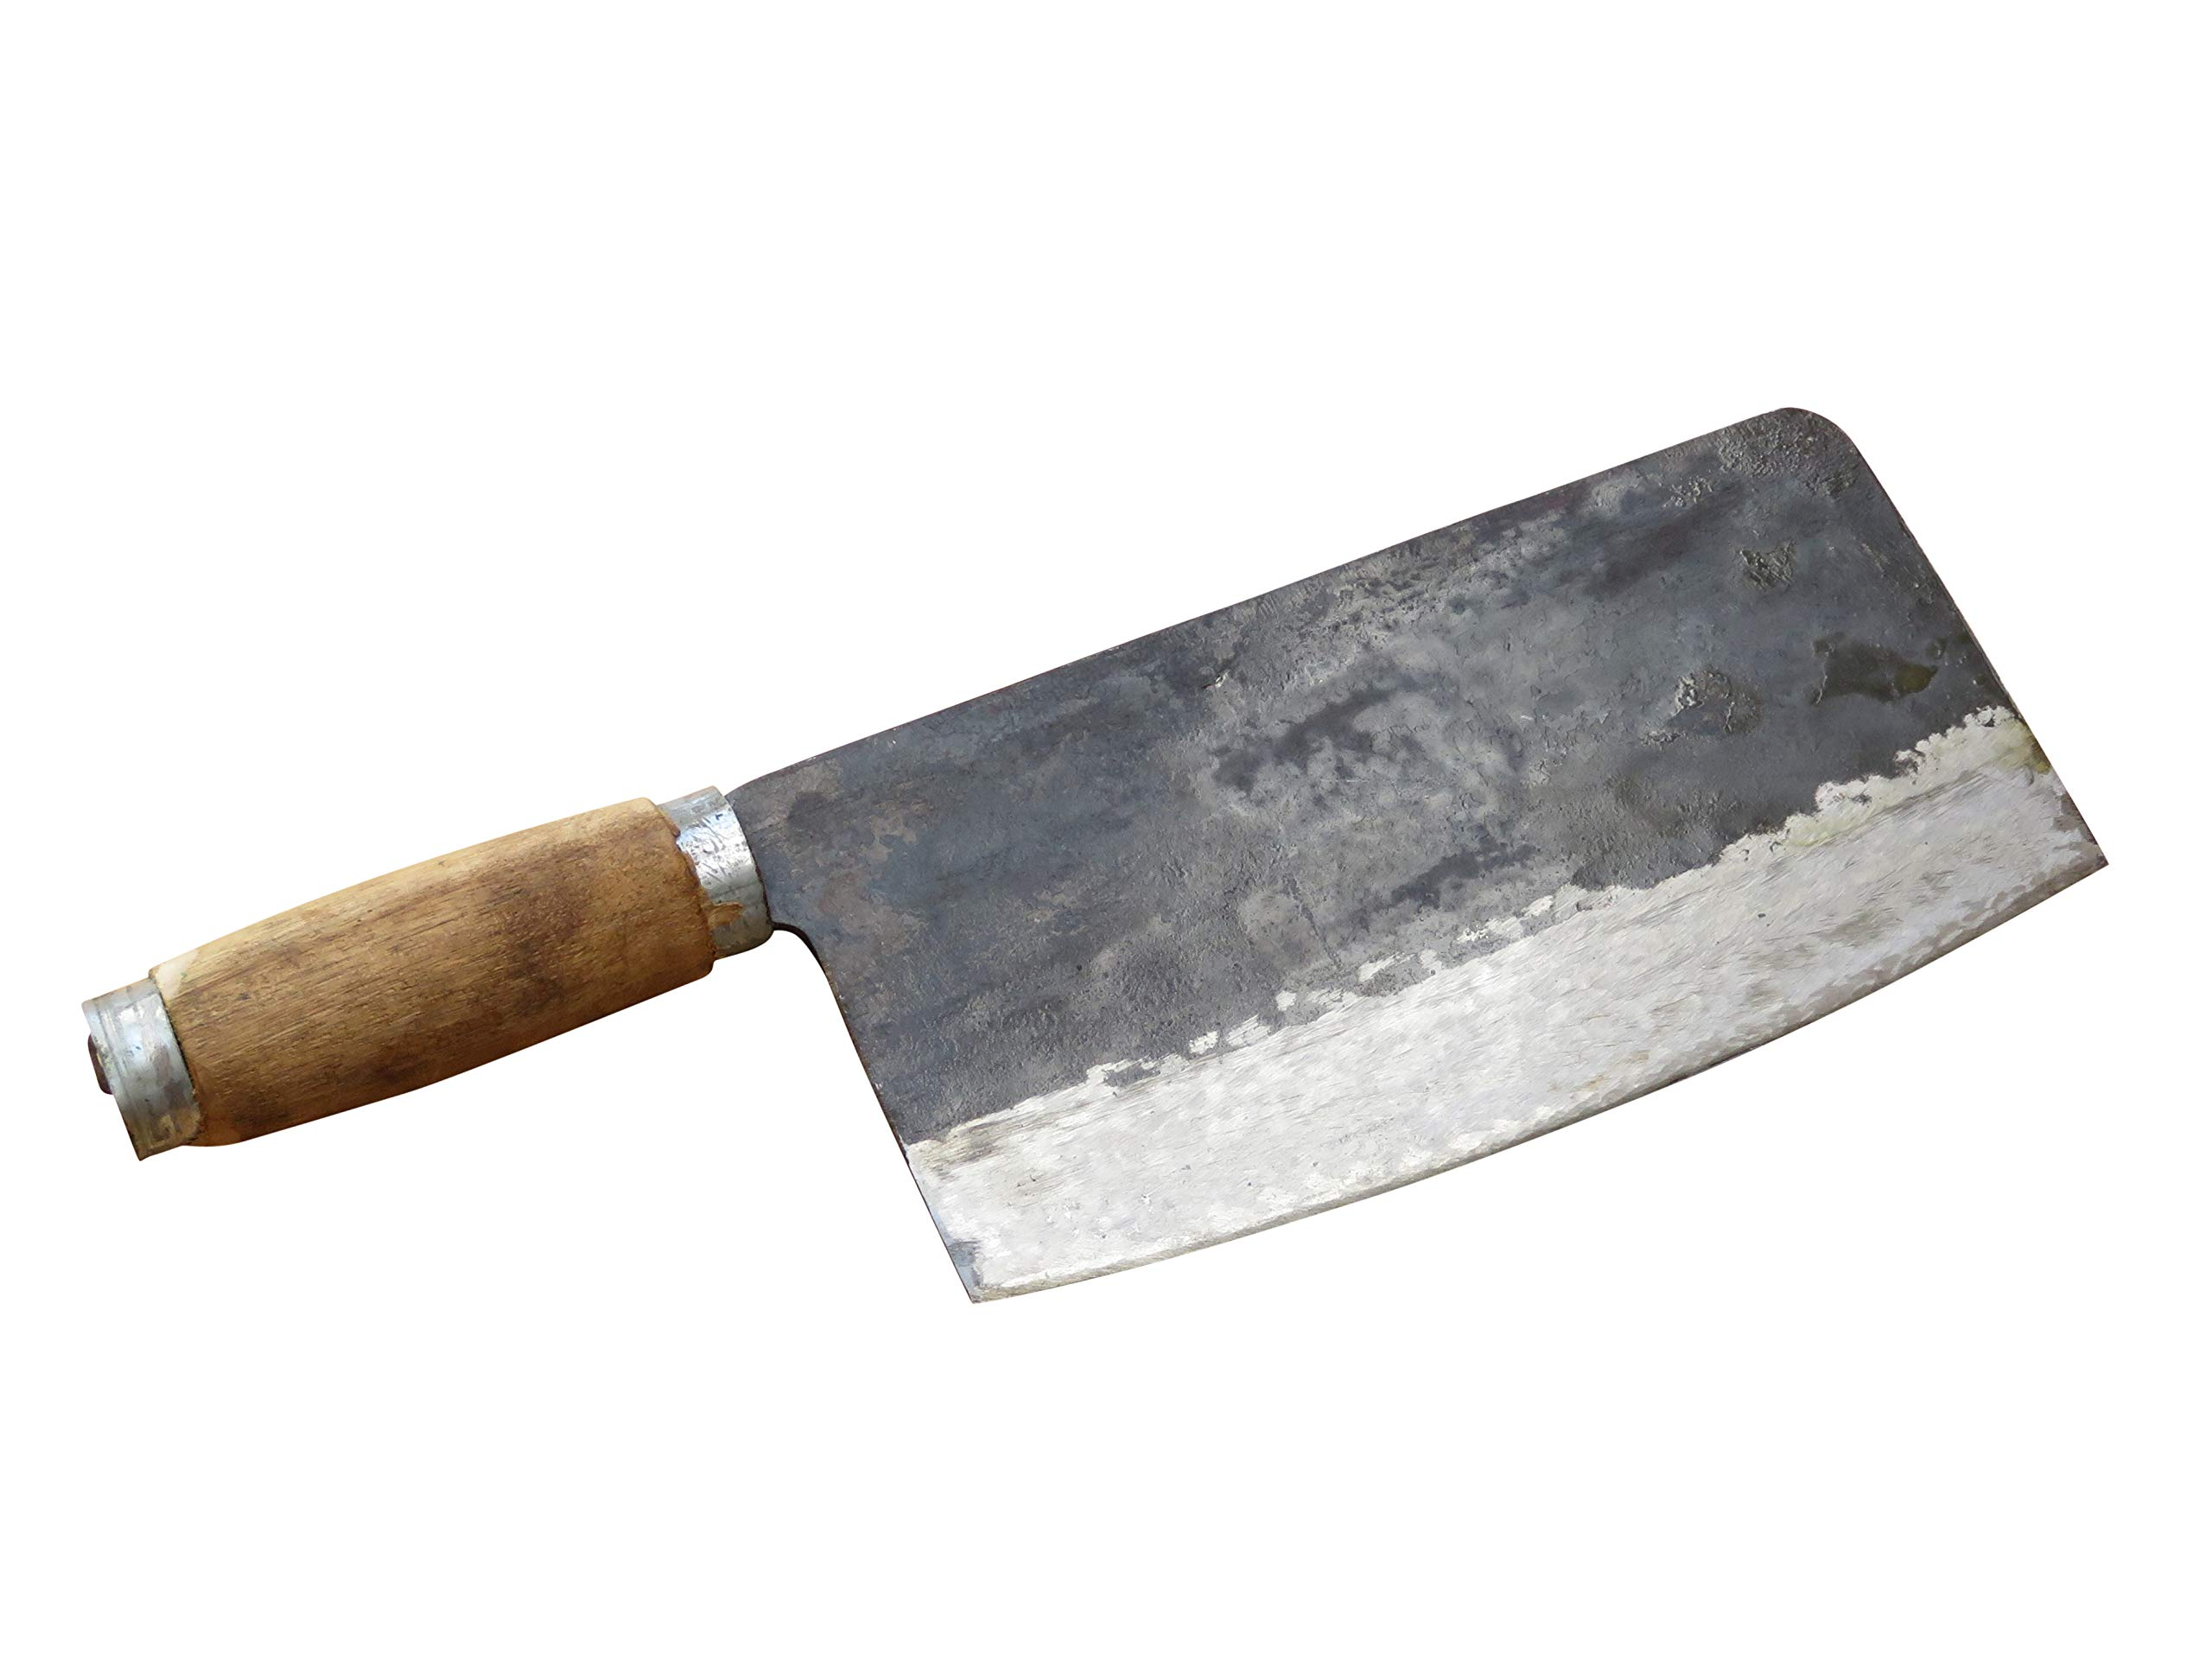 Crude - Chinese Cleaver Meat Chopping Chef Knife, 8 inch, Carbon Steel, Forged